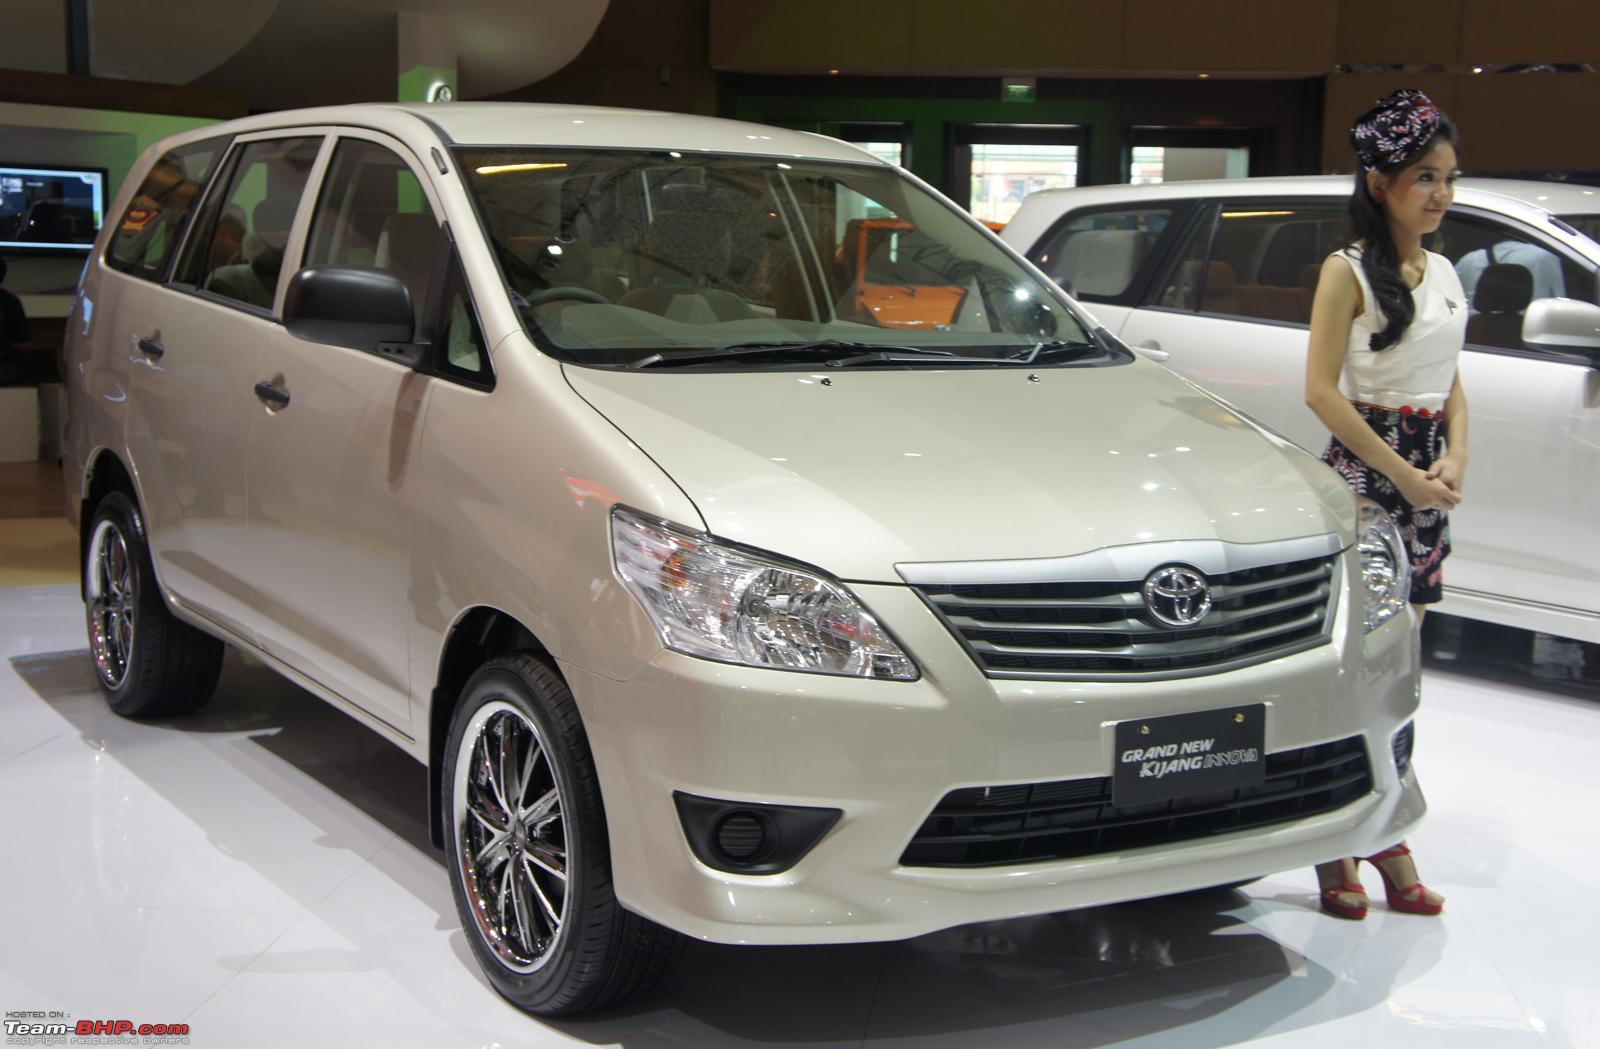 2012 Toyota Innova facelift unveiled internationally-dsc02975.jpg